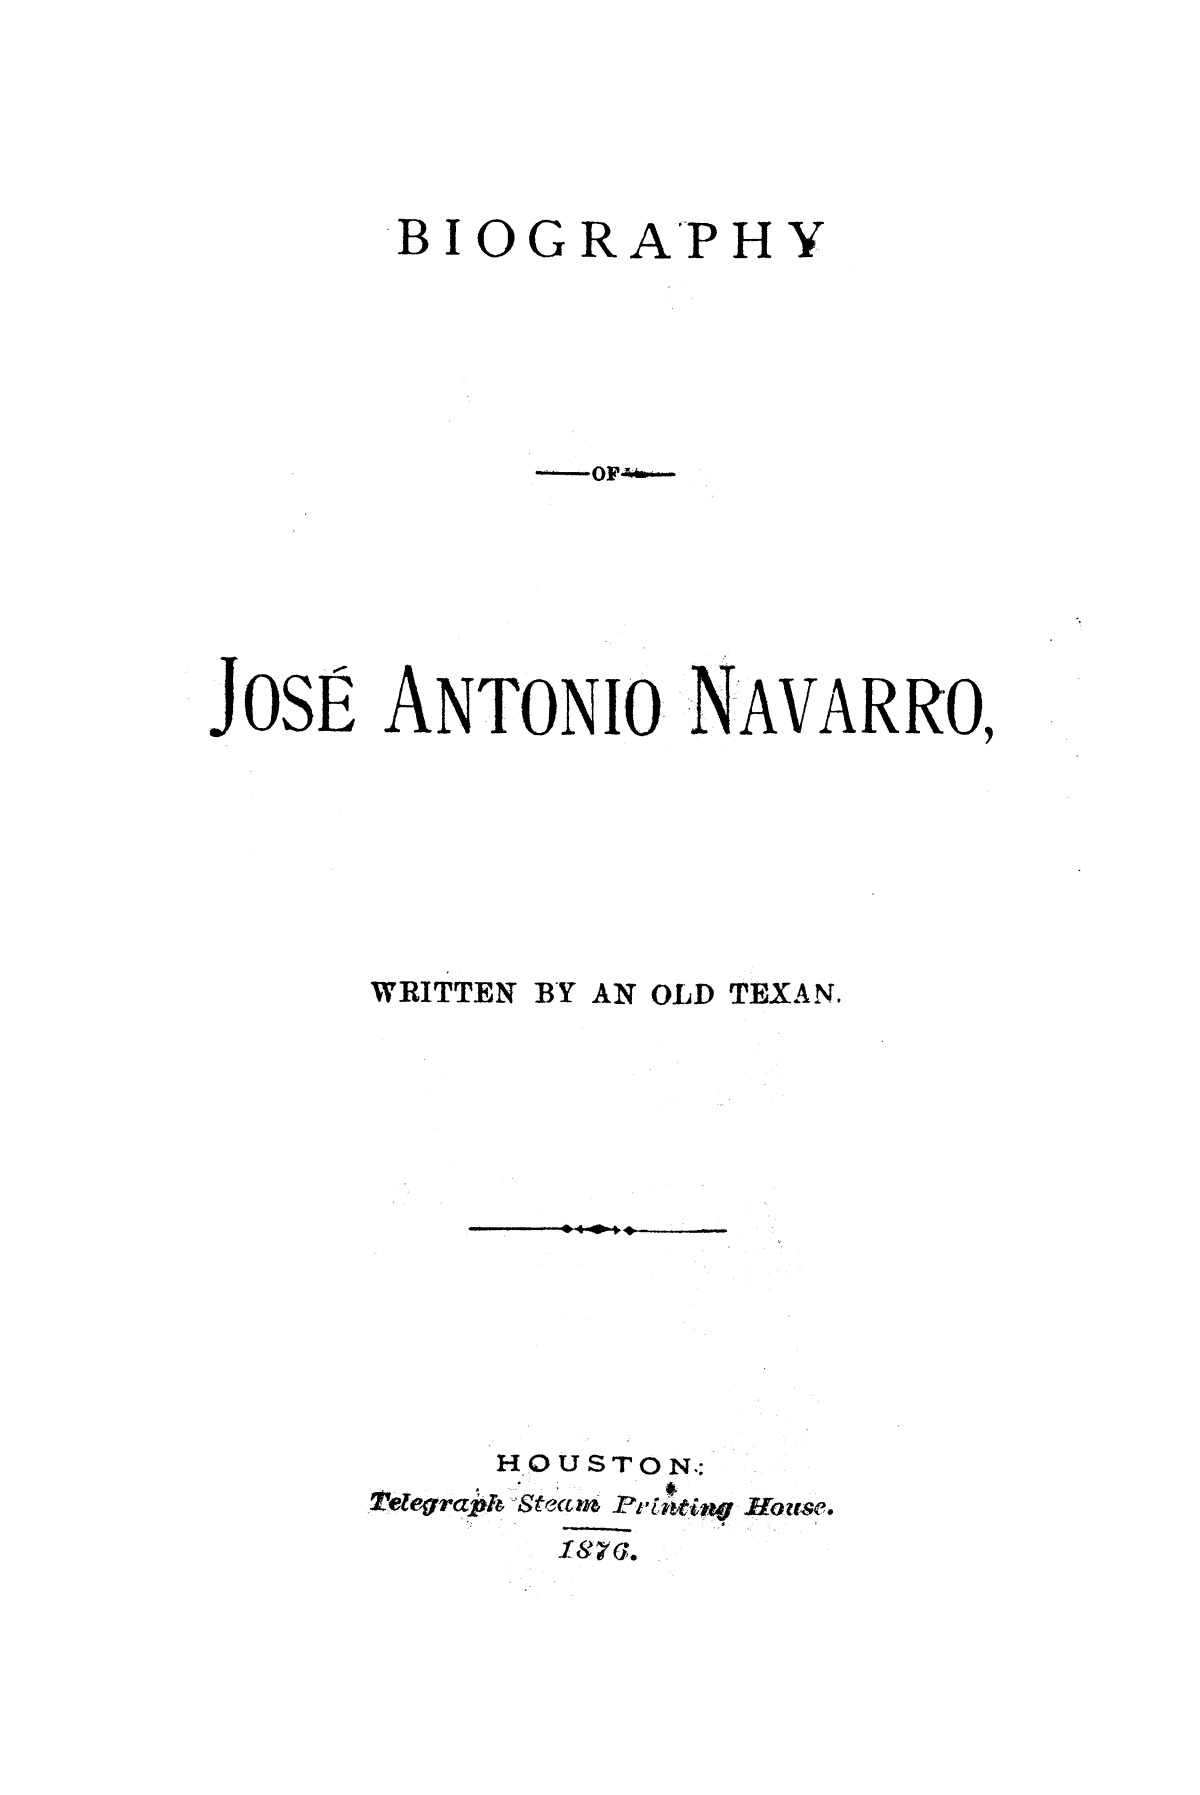 Biography of José Antonio Navarro / written by an Old Texan.                                                                                                      [Sequence #]: 1 of 30